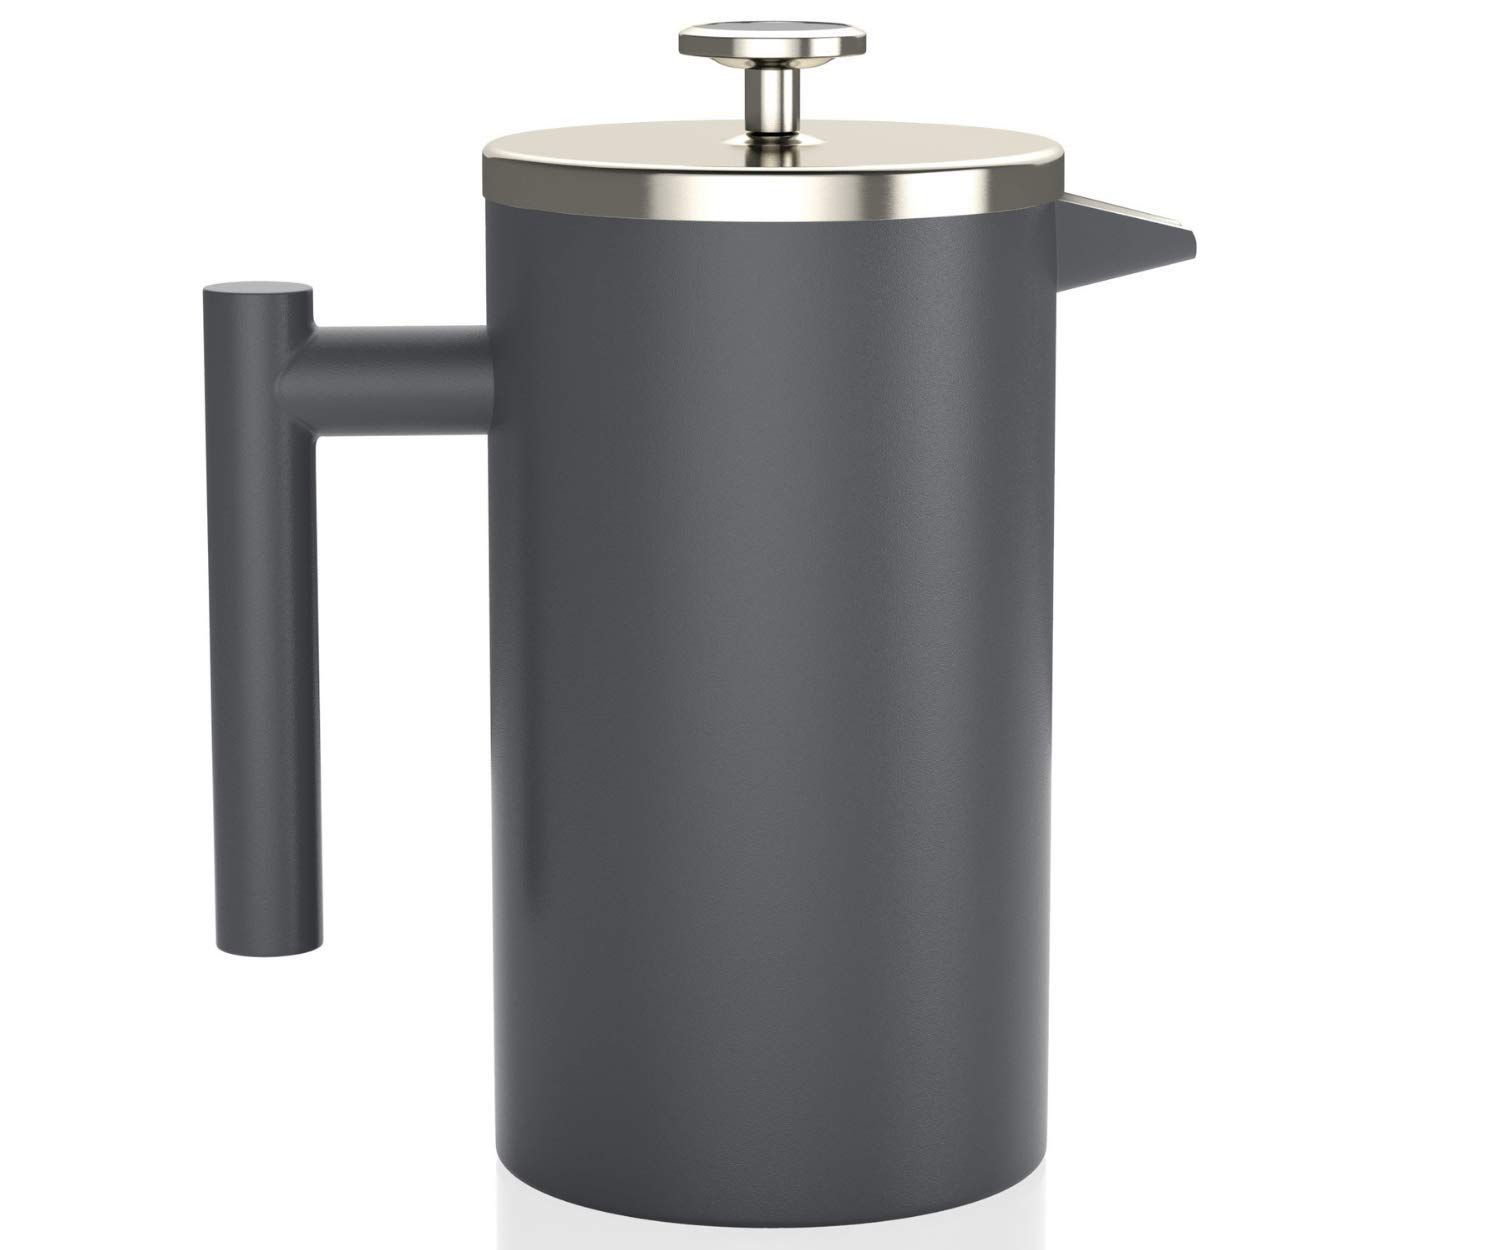 Stainless Steel French Press—Amazon Mother's Day Gifts